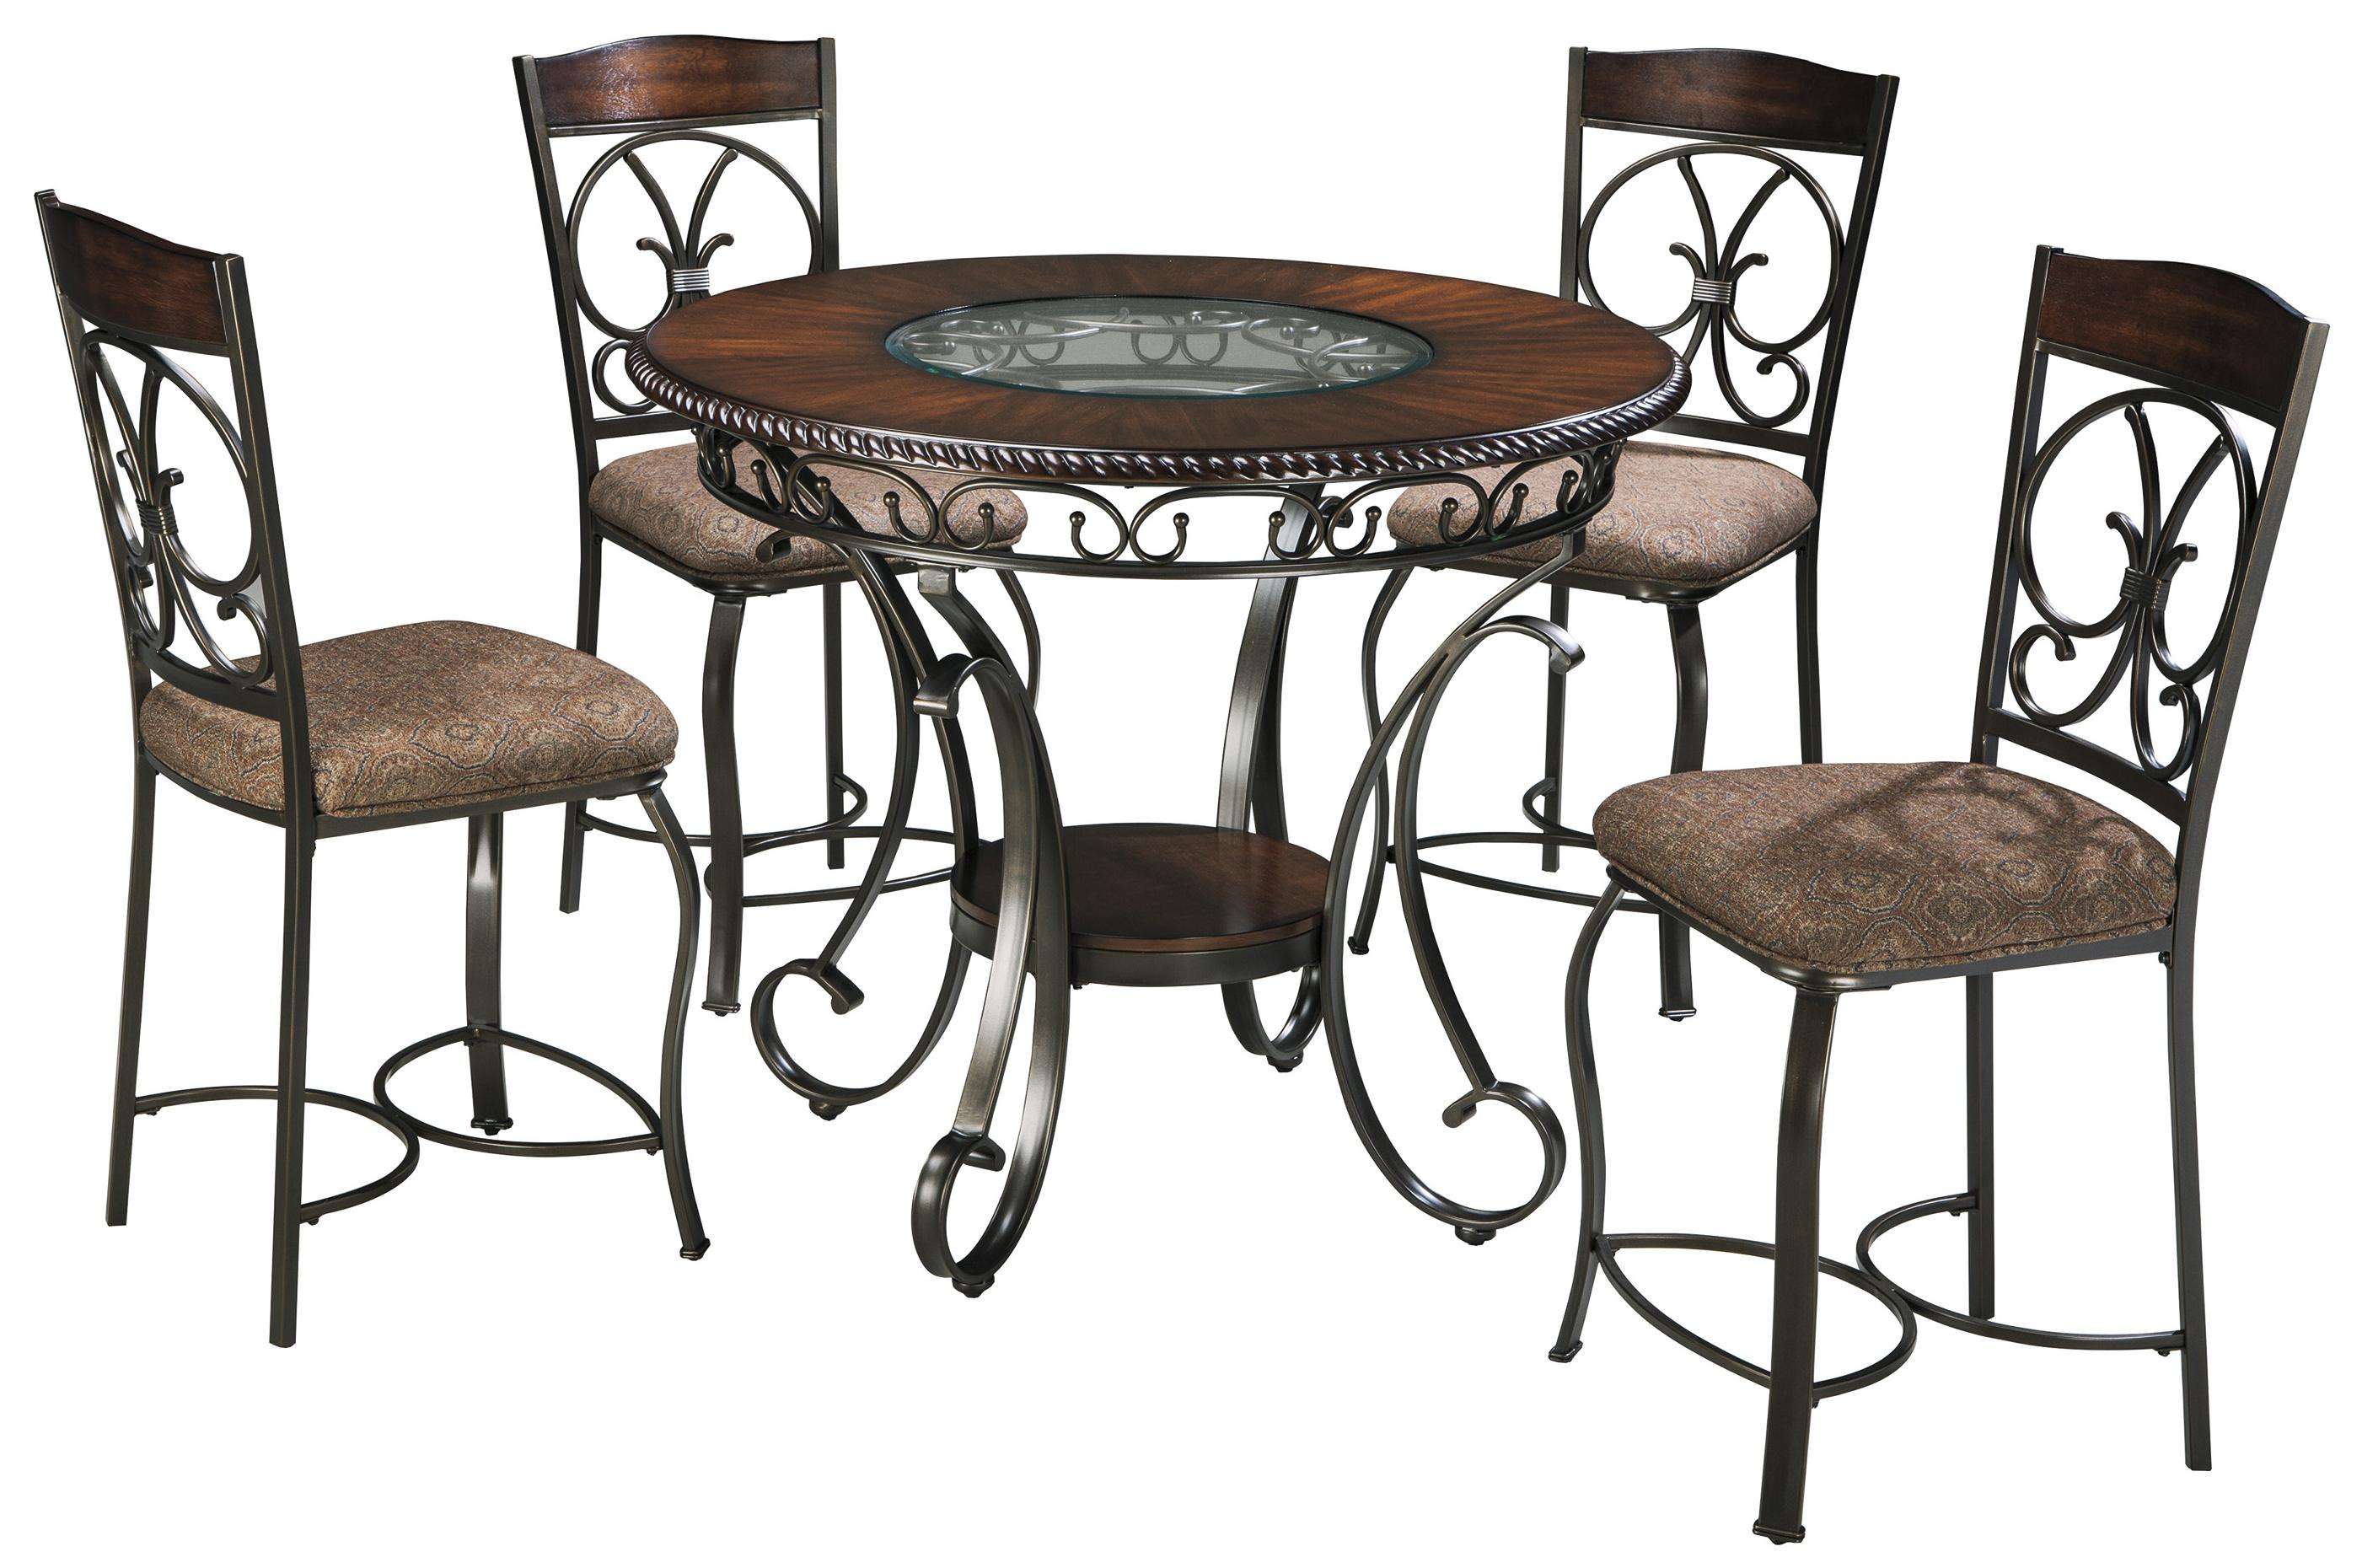 Glambrey Round Counter Table and Barstool Set by Ashley (Signature Design) at Johnny Janosik